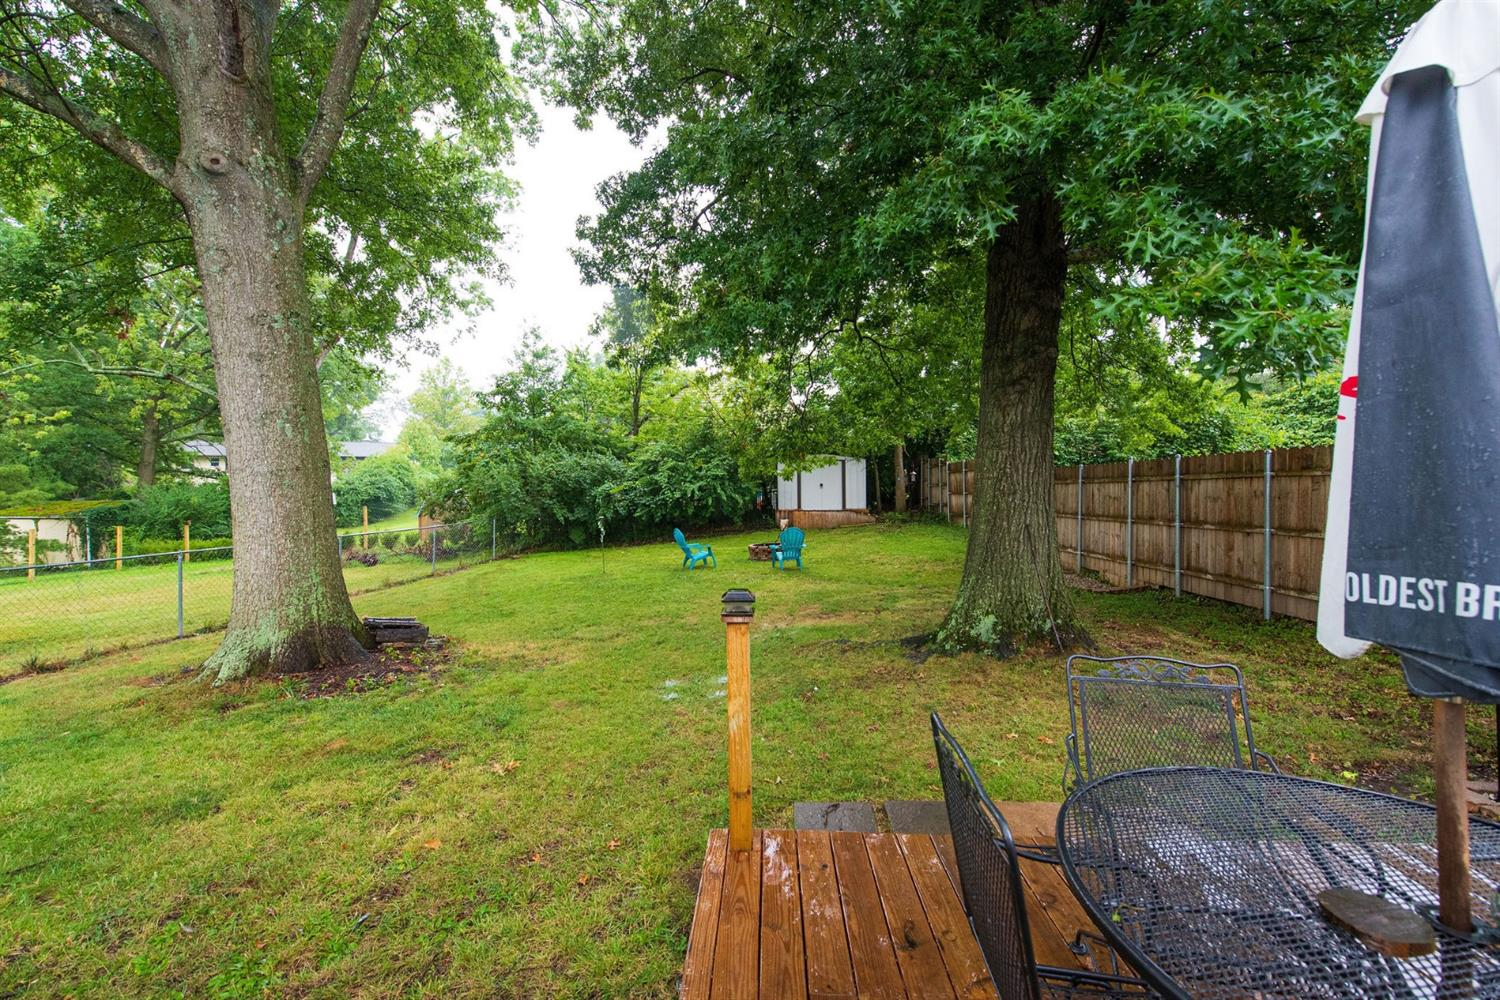 Flat fenced in backyard. Shed. Patio deck.